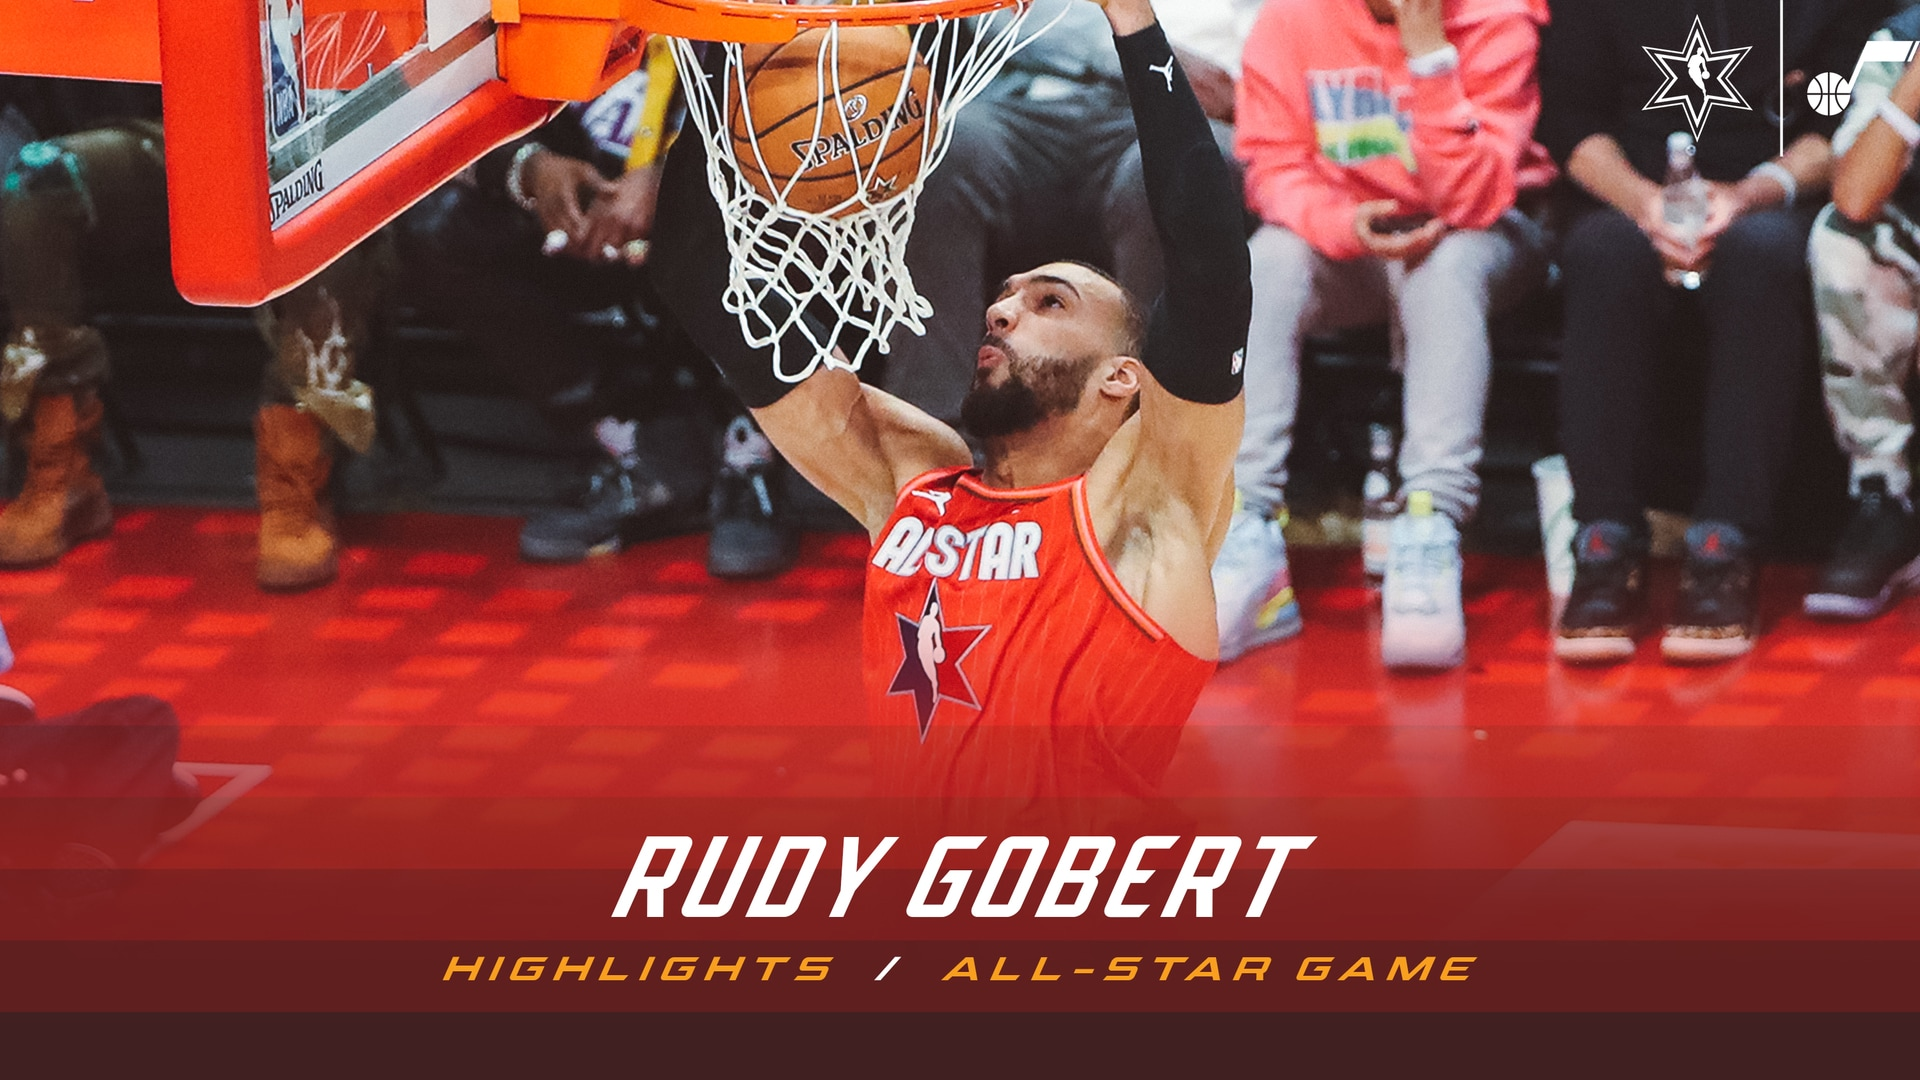 All-Star Game Highlights: Rudy Gobert—21 points, 11 rebounds